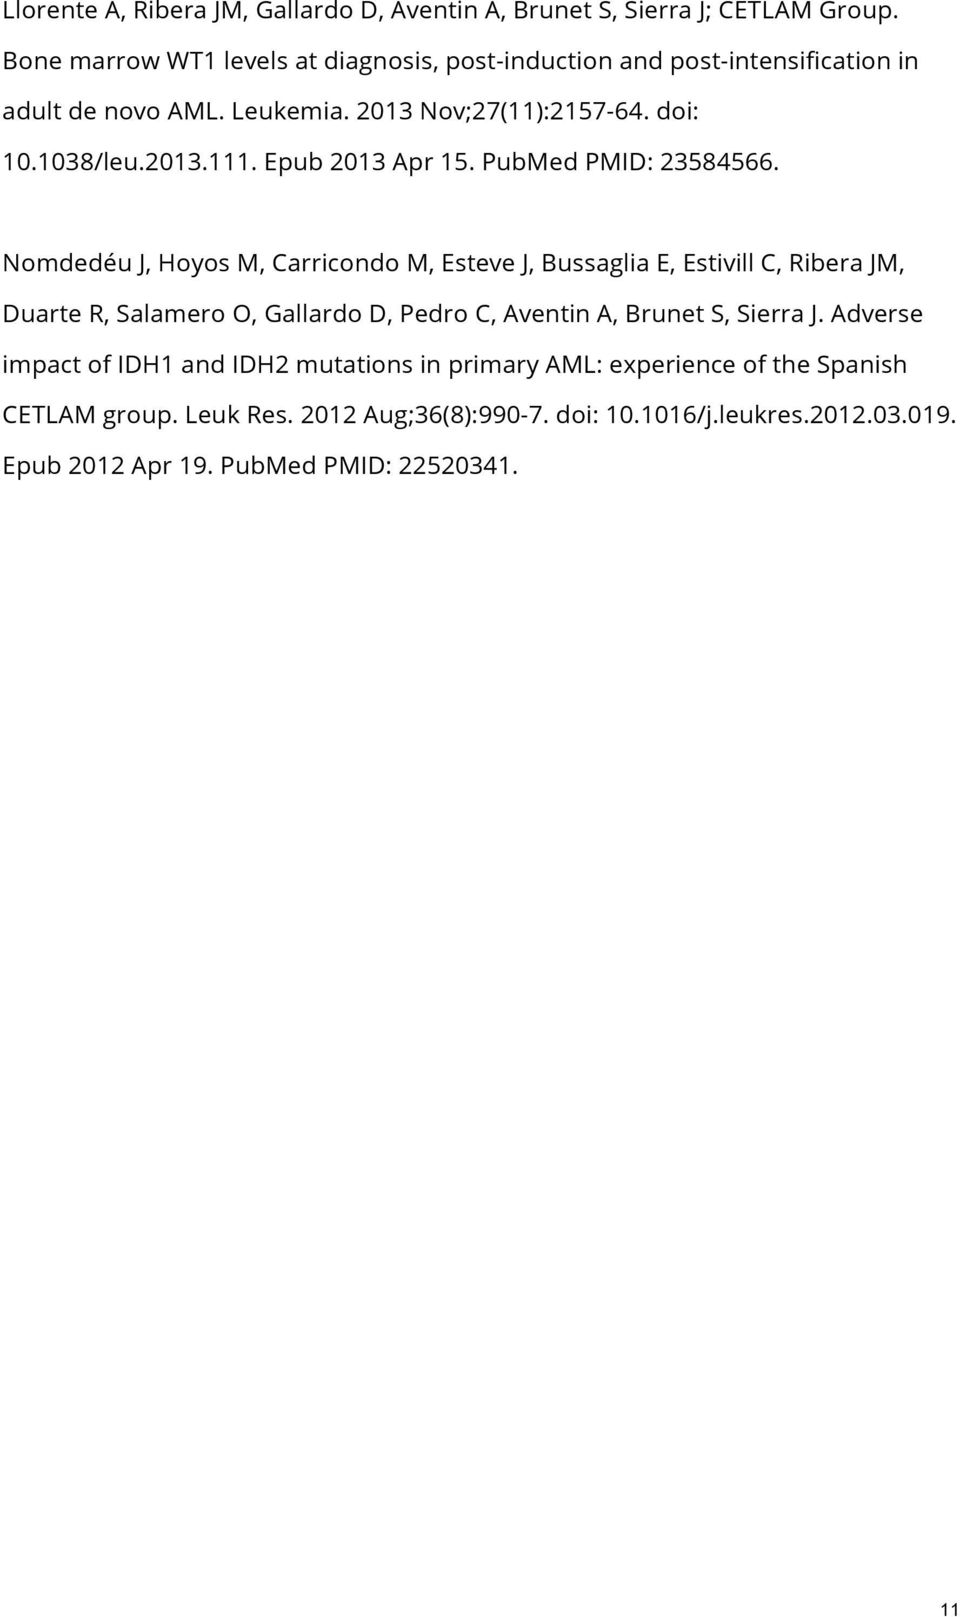 Epub 2013 Apr 15. PubMed PMID: 23584566.